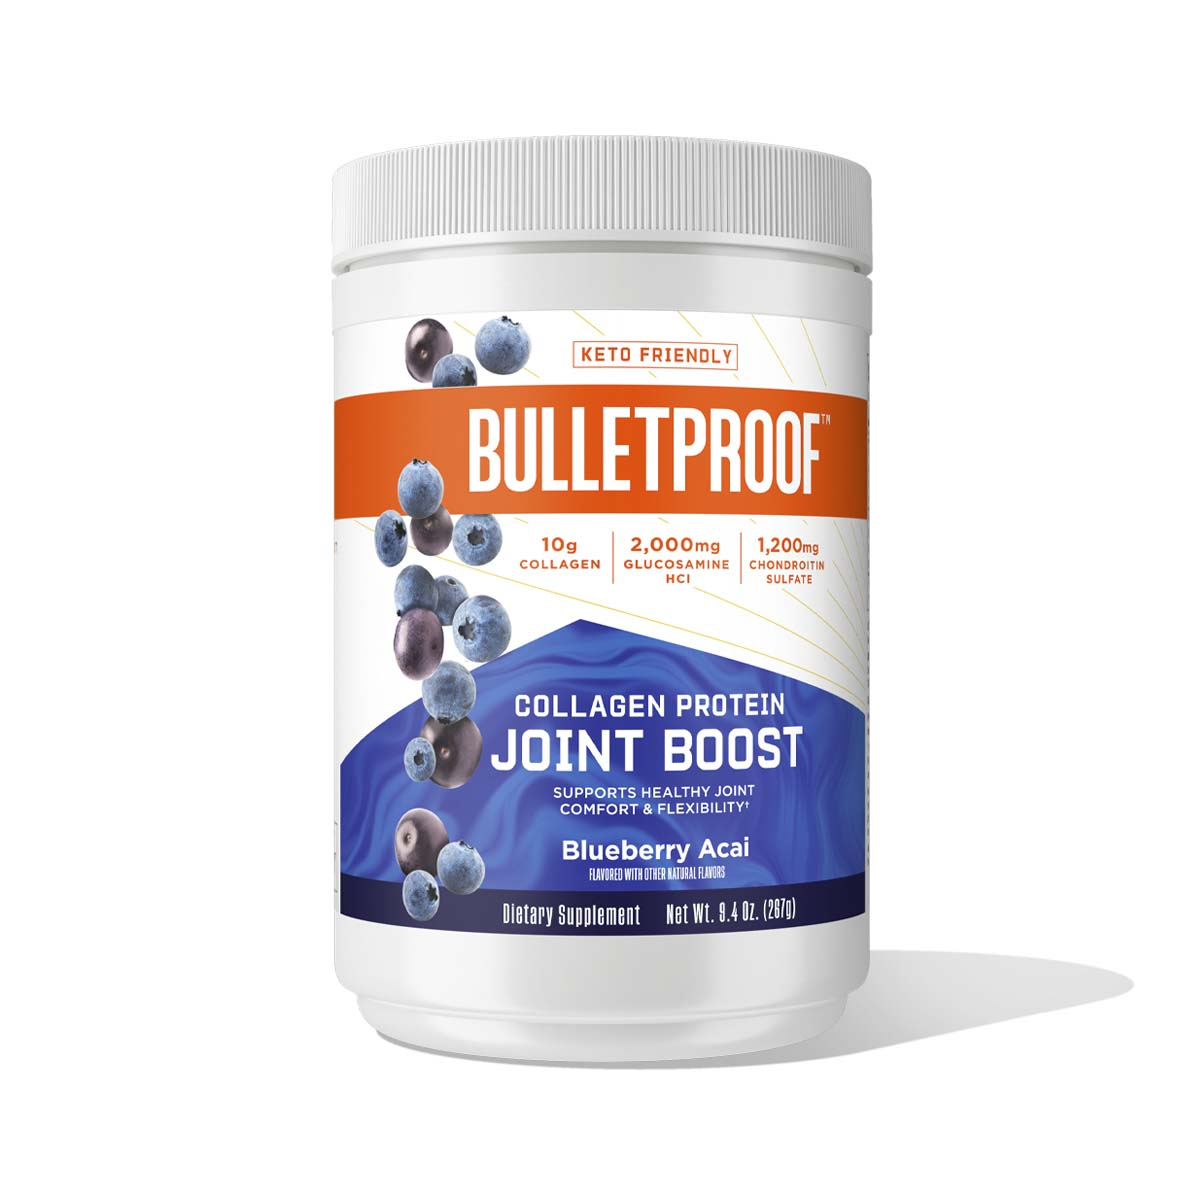 Bulletproof Collagen Protein Joint Boost - 9.4 oz